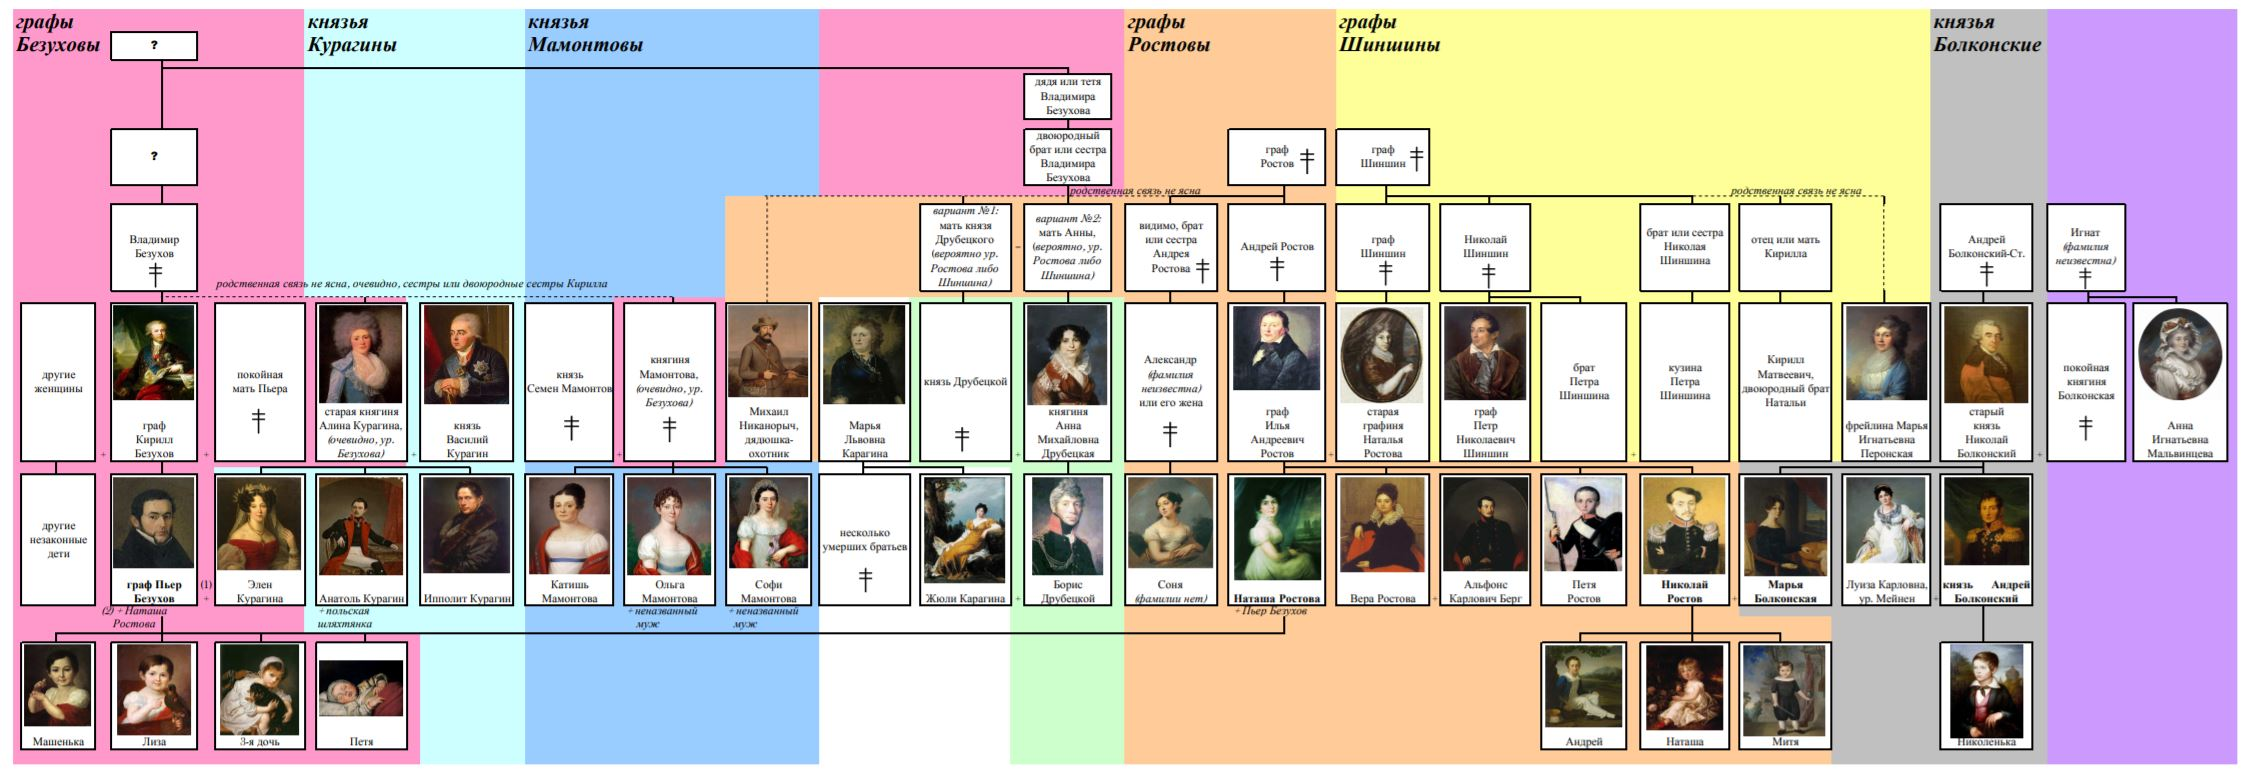 War and Peace family tree